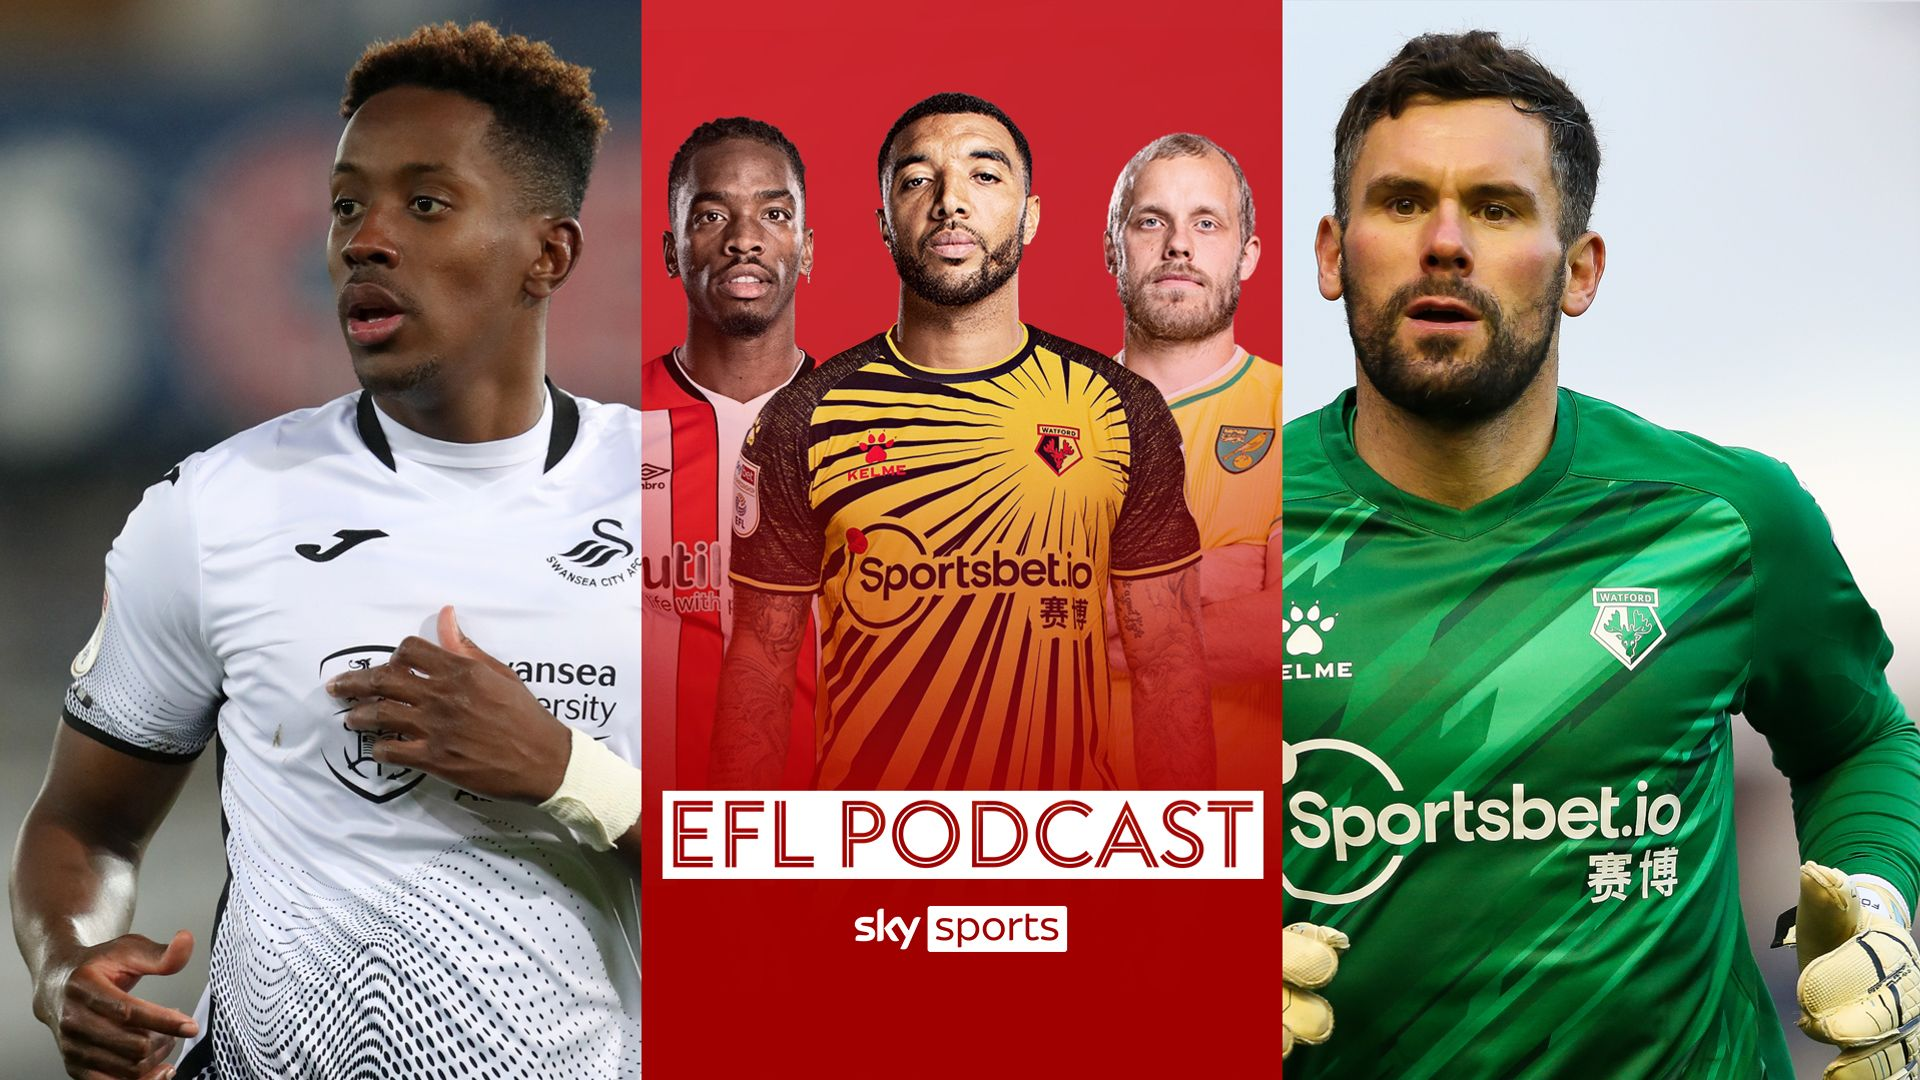 EFL Podcast: Covid cancellations and managerial merry-go-rounds